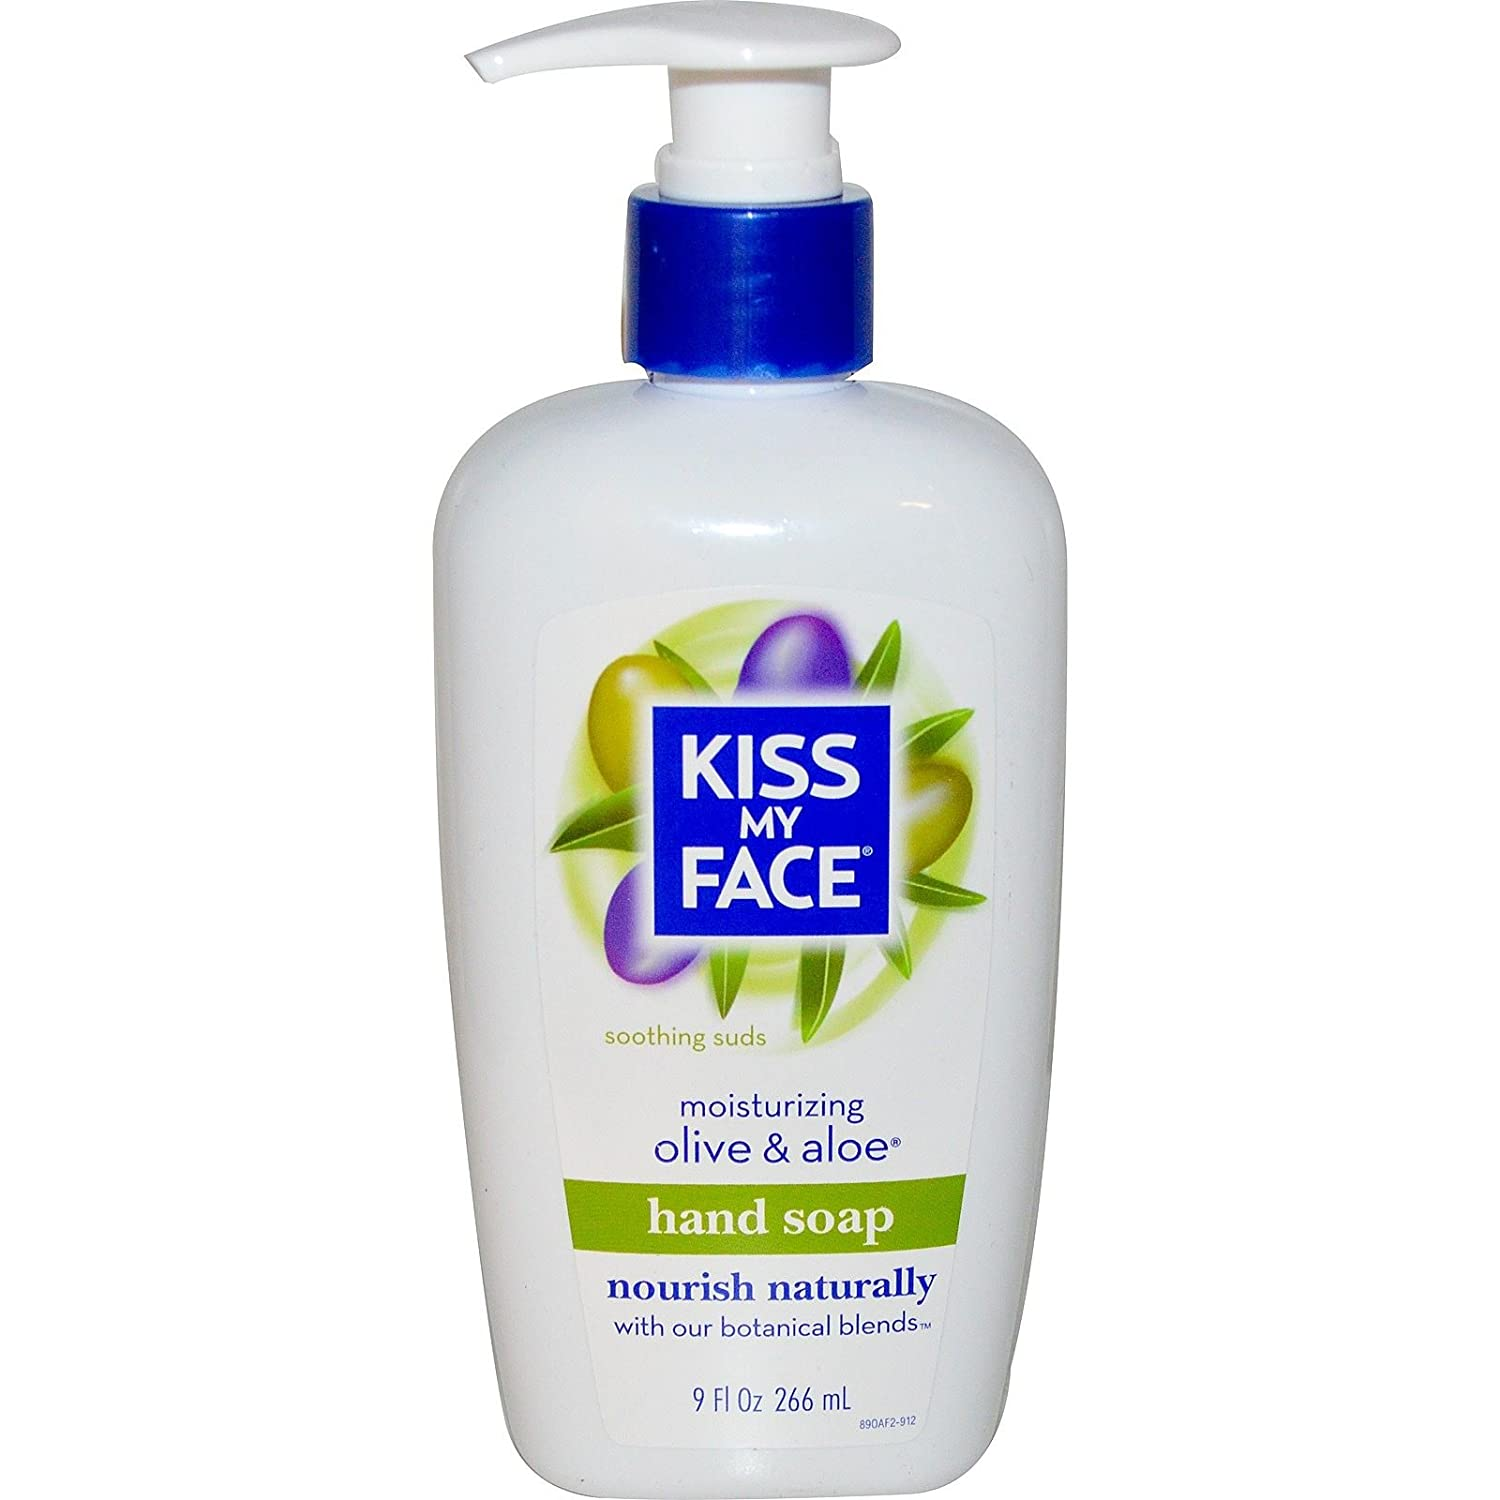 Kiss My Face Moisturizing Hand Soap, Olive & Aloe 9 oz